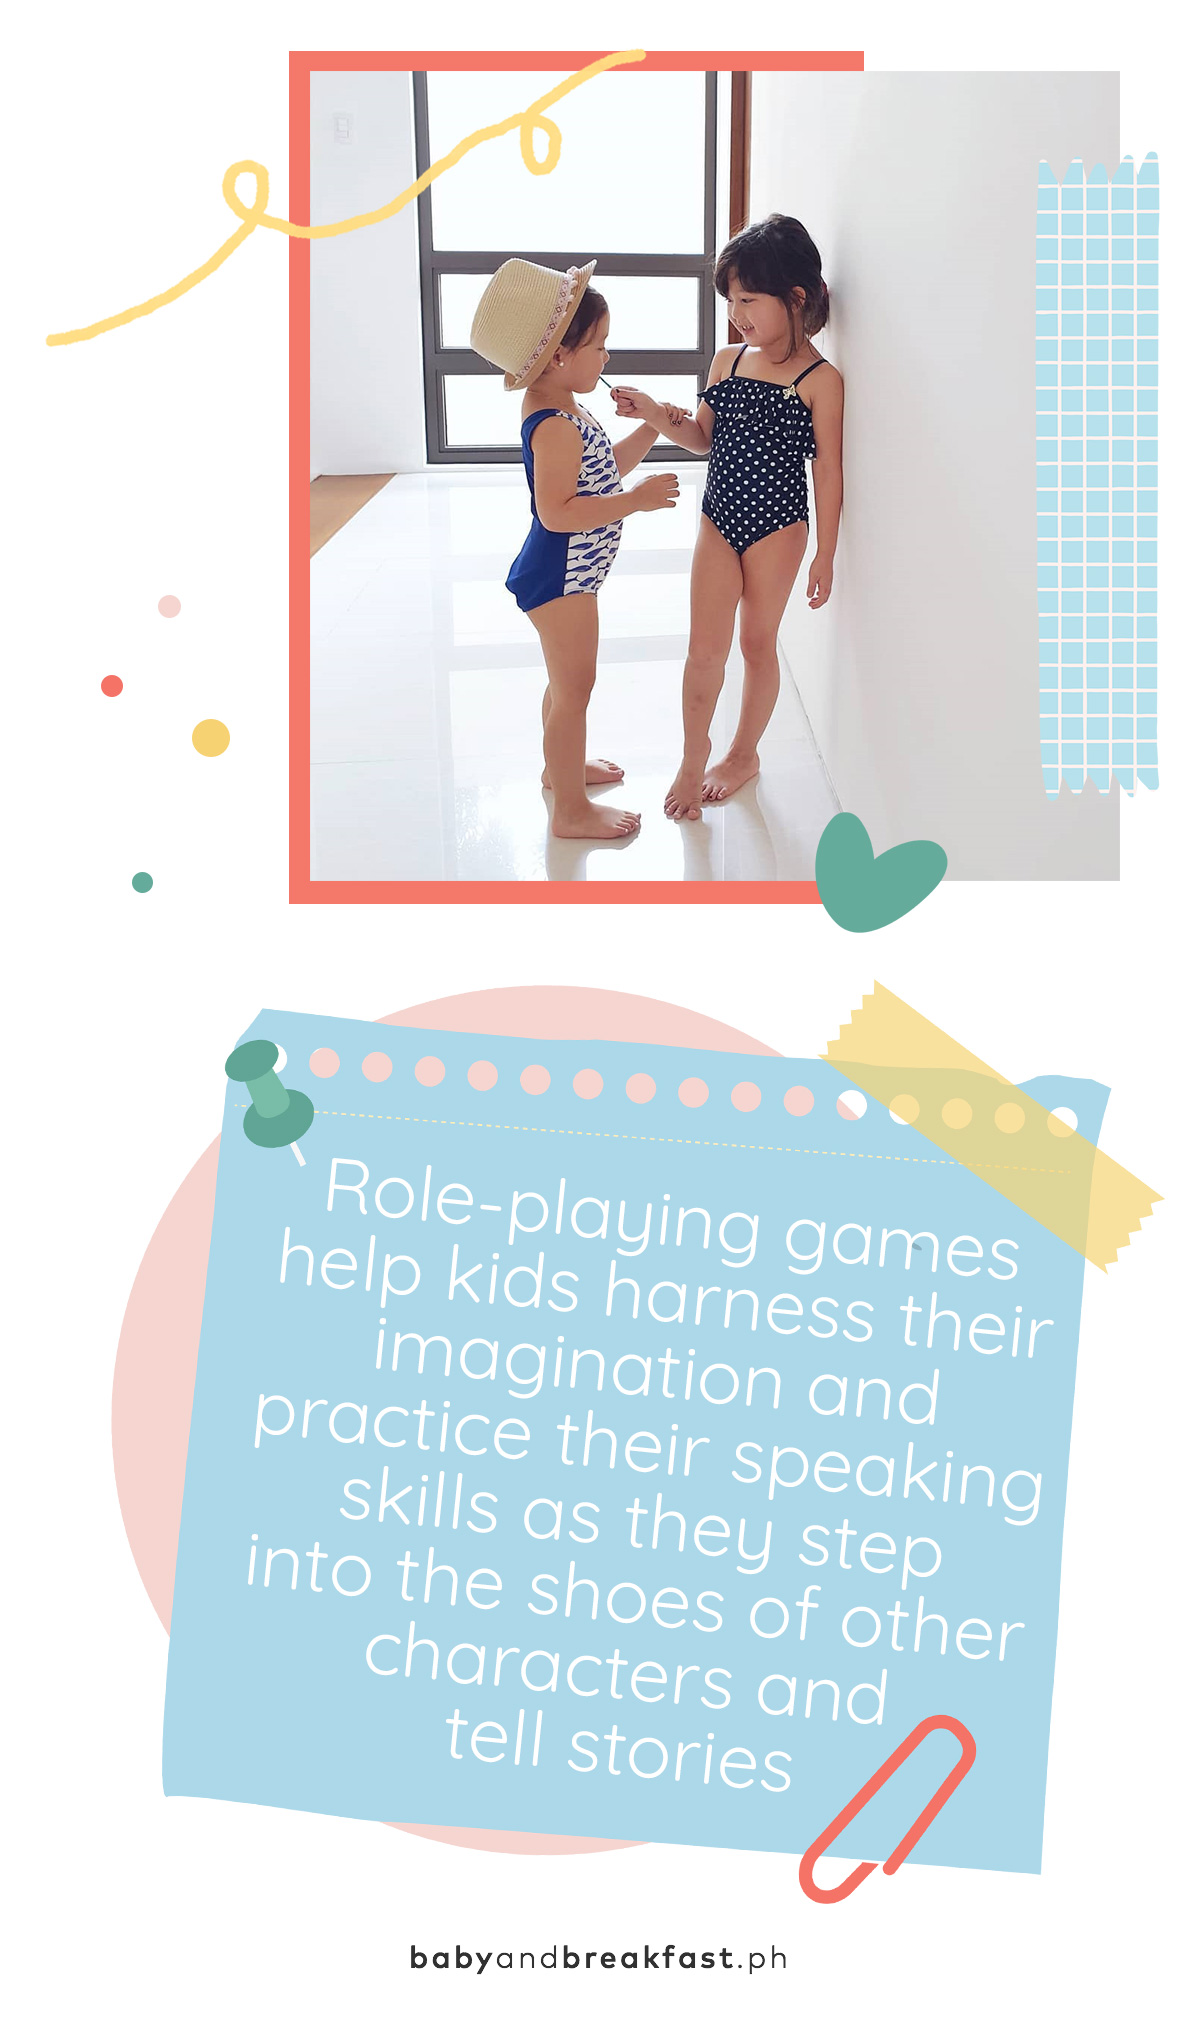 Role-playing games help kids harness their imagination and practice their speaking skills as they step into the shoes of other characters and tell stories